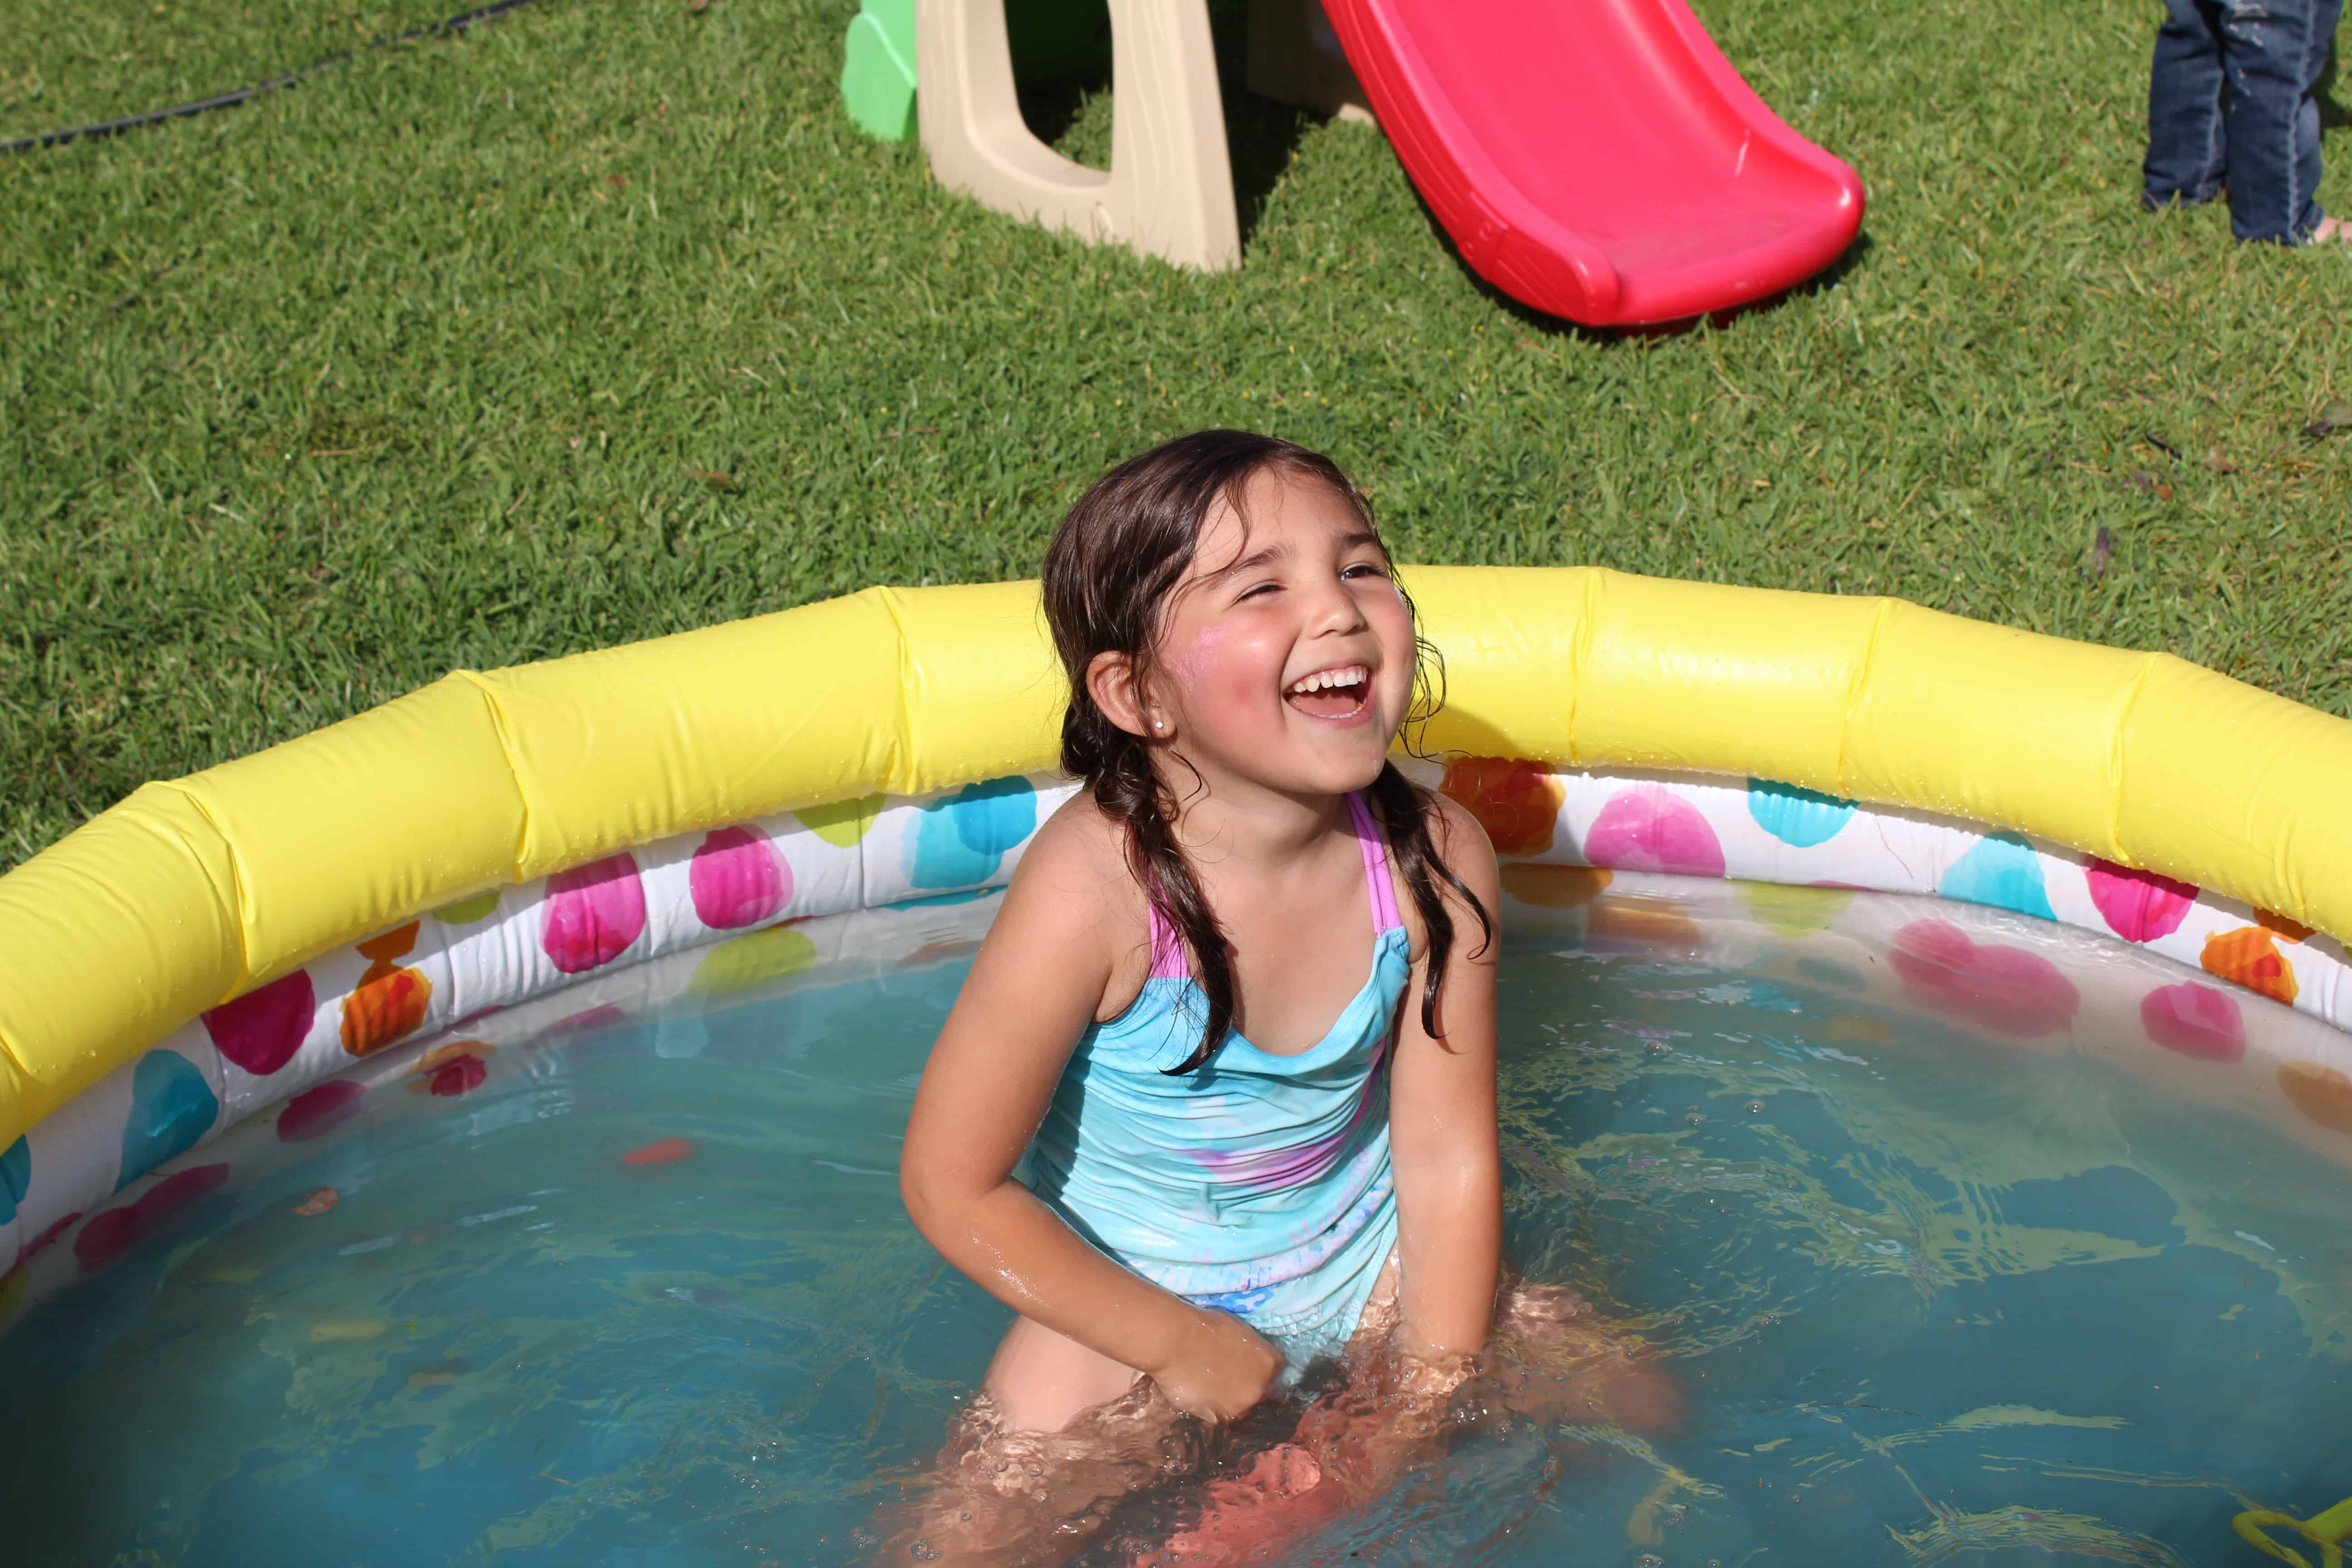 Little girl smiling in inflatable pool